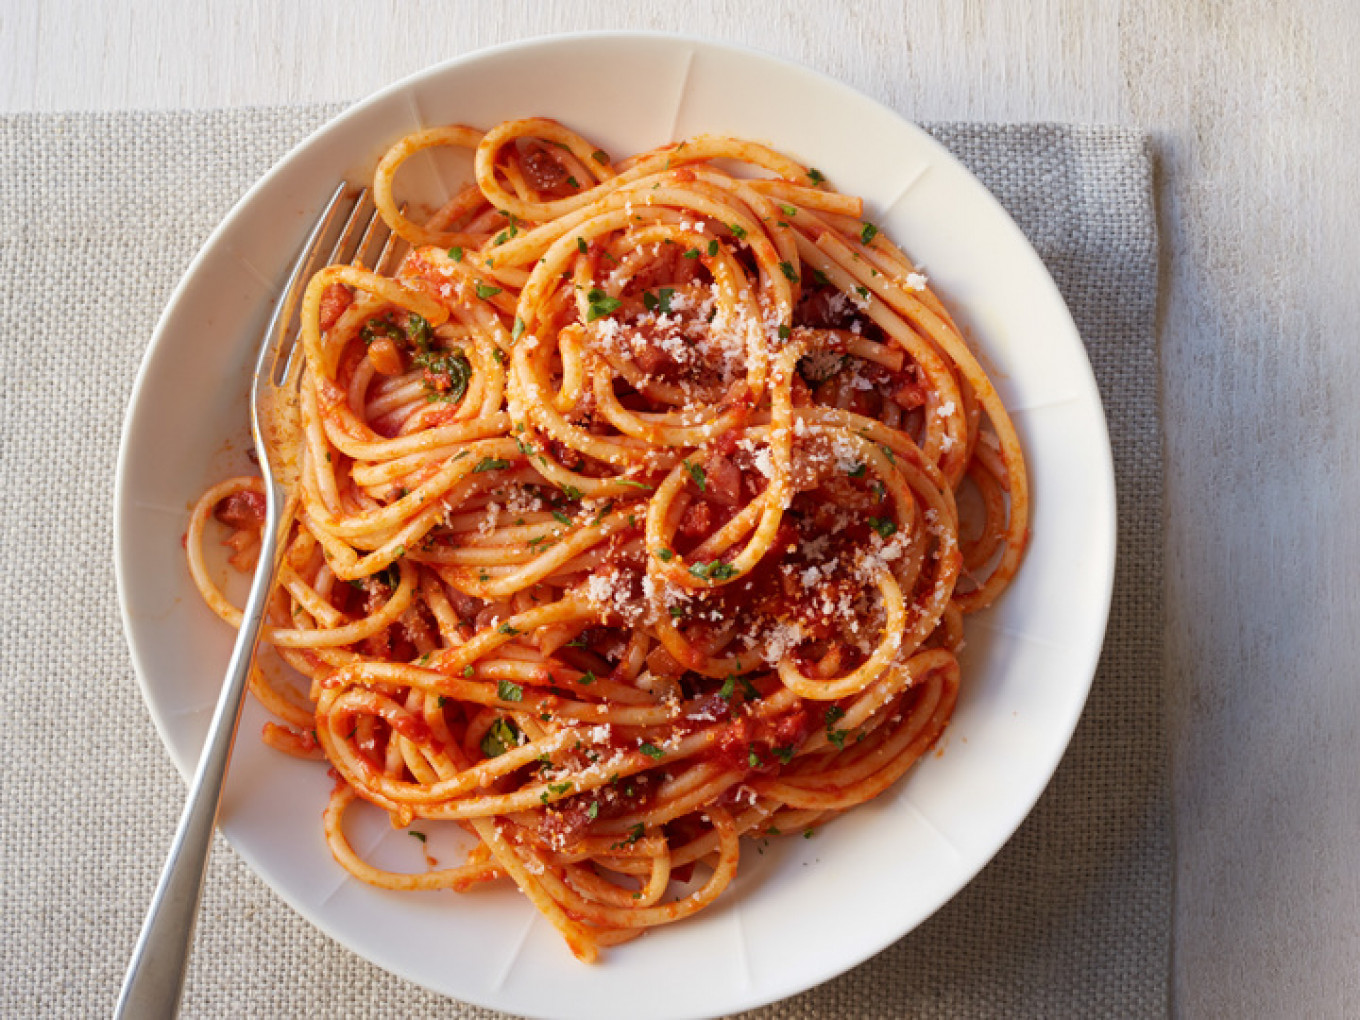 Pasta with sauce Amatriciana, a specialty of one of the cities destroyed by an earthquake on Aug. 24.				 				foodnetwork